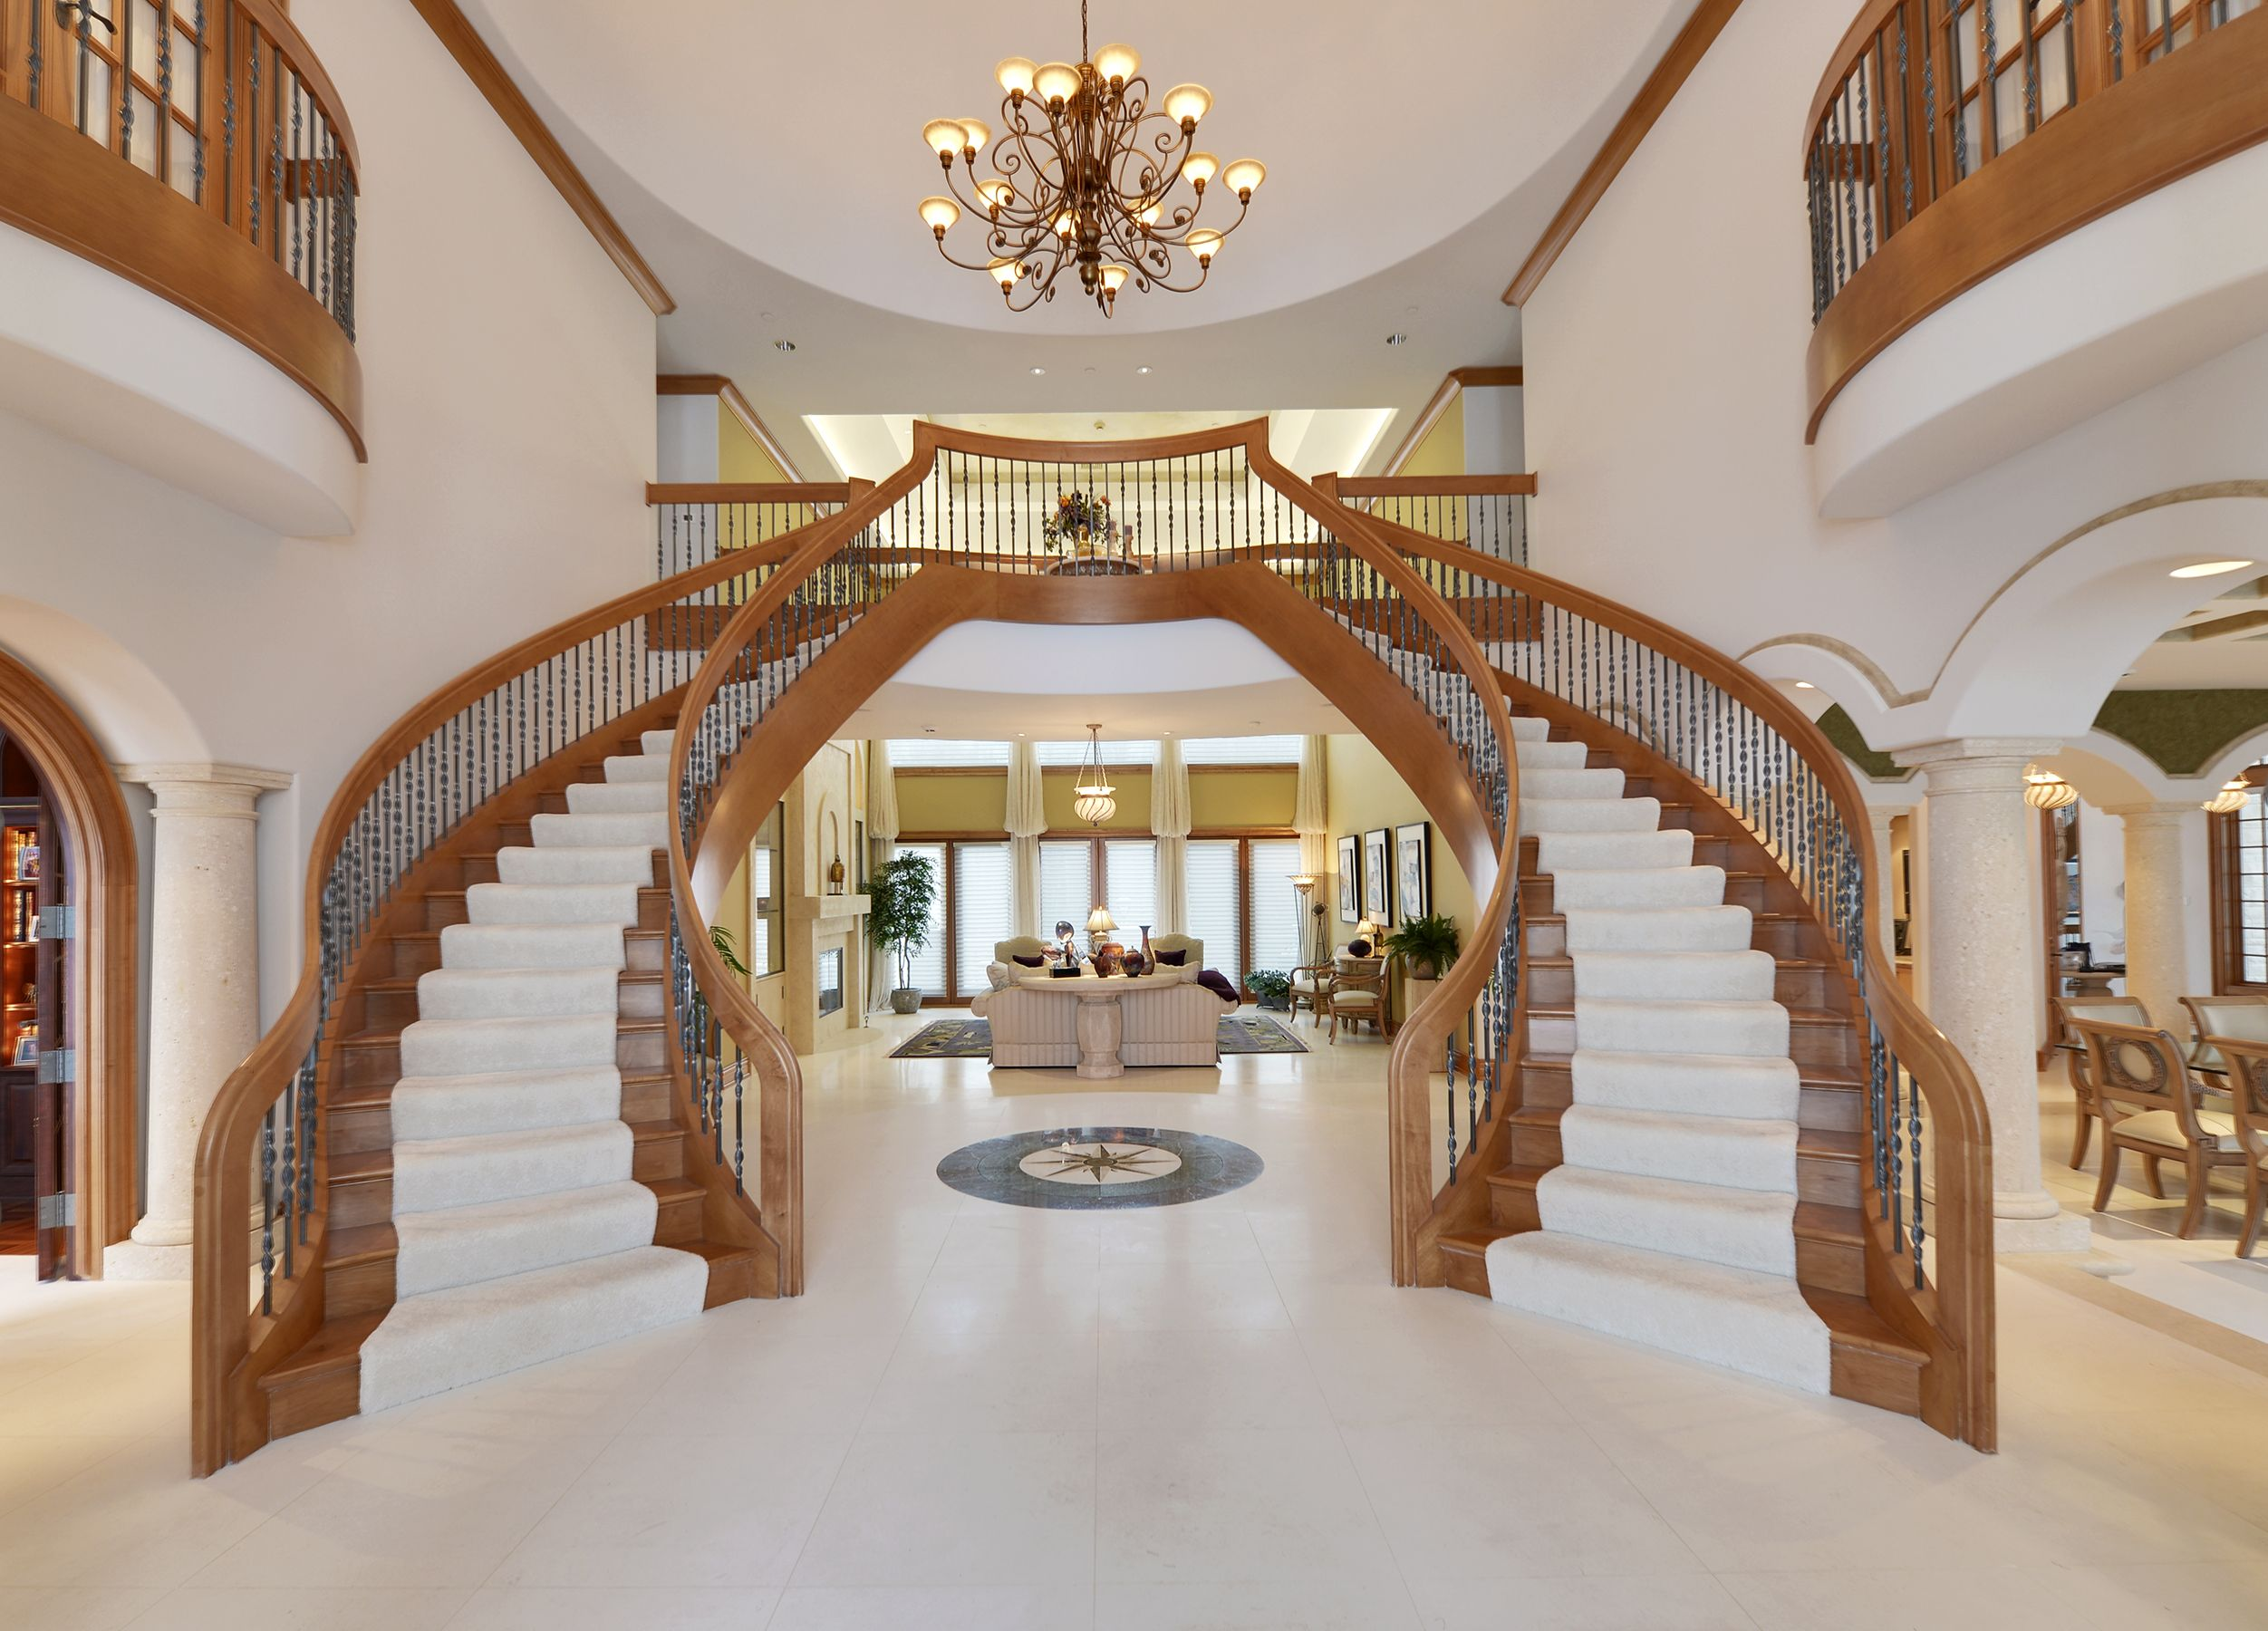 Dual Staircase in Grand Foyer | Luxury Homes | Pinterest